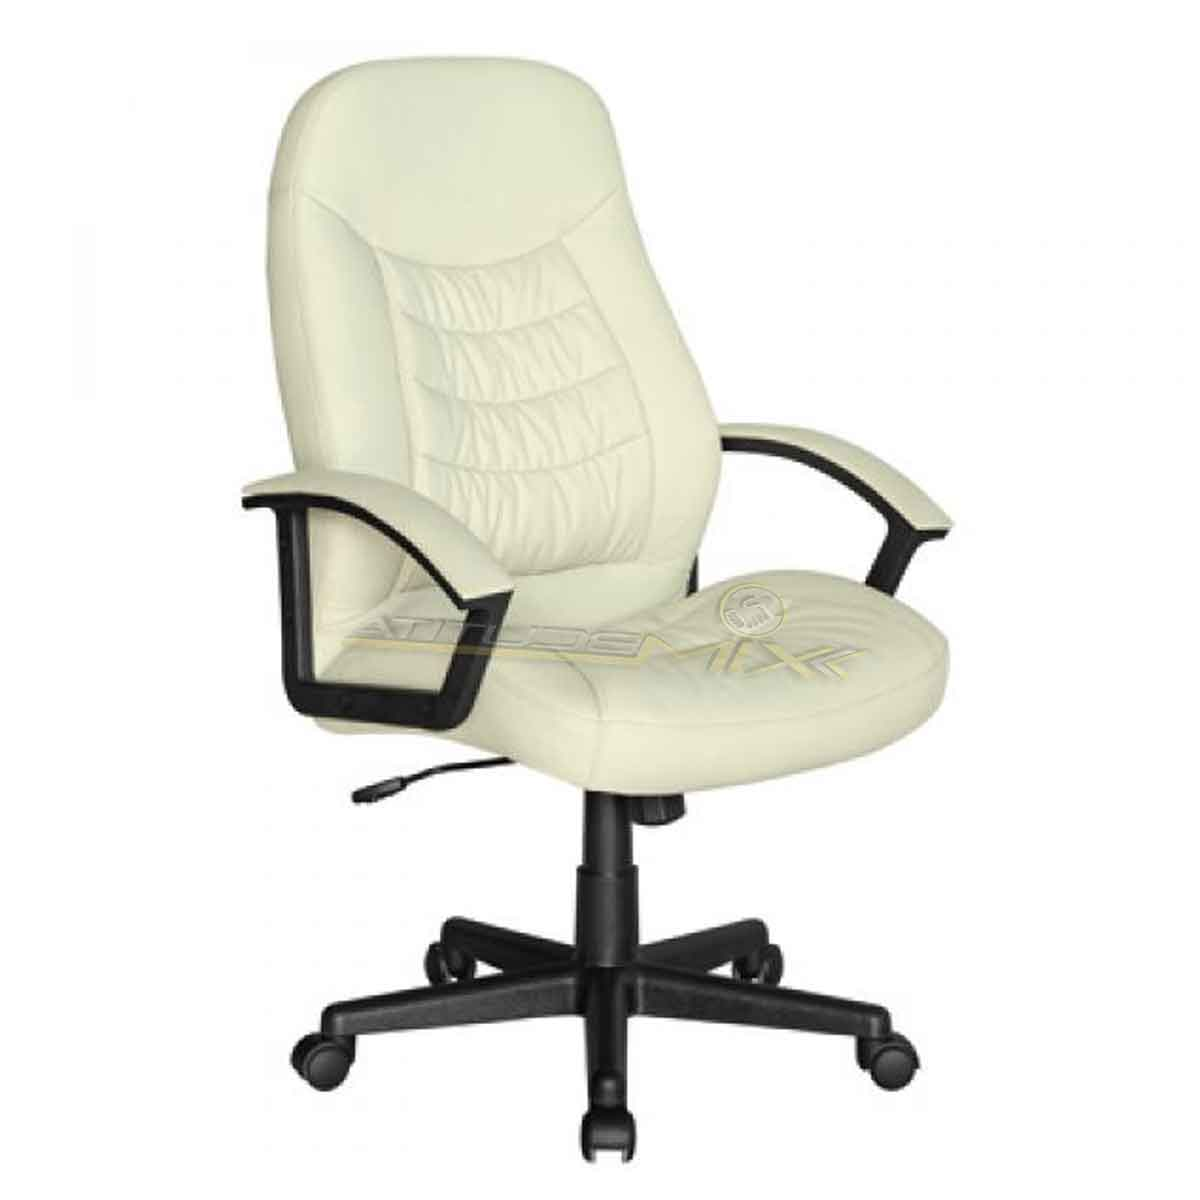 UMOBILI CADEIRA OFFICE BASIC MARFIM UMB5052